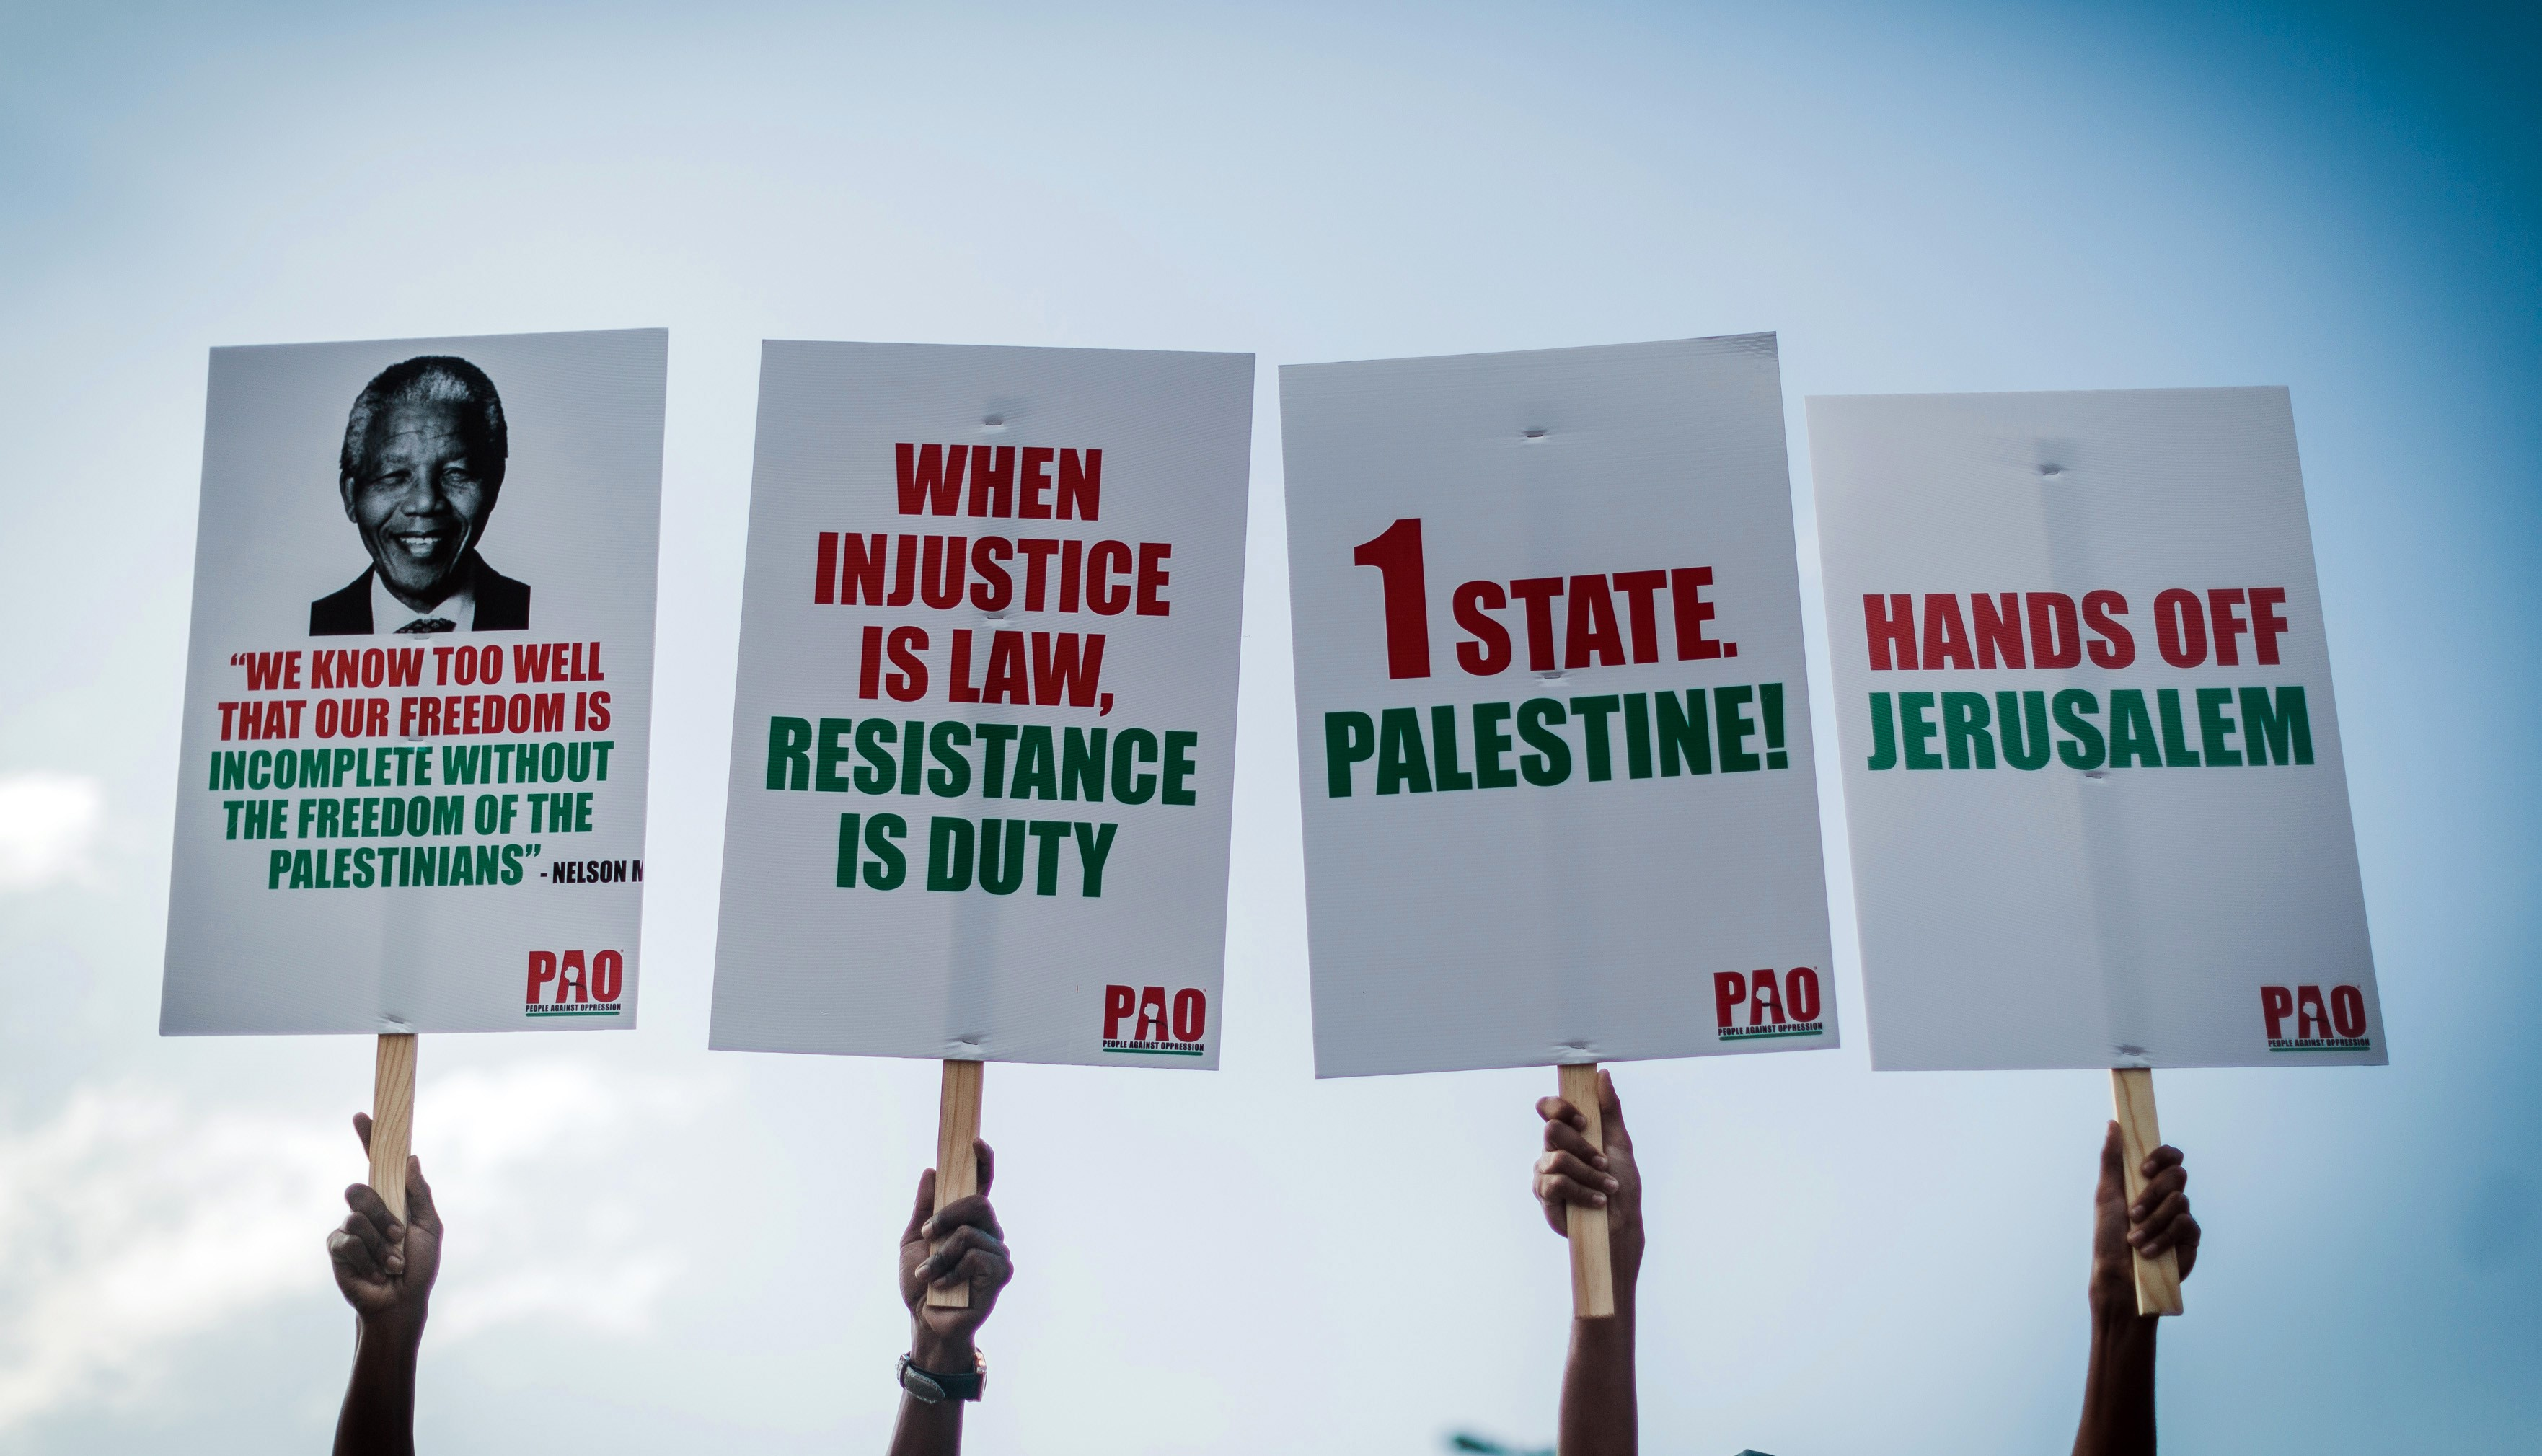 A demonstration by pro-Palestinian groups and other civil society organisations, in Durban on 2 June, 2018 to protest against the killing of Palestinians by Israeli forces in Gaza (AFP)